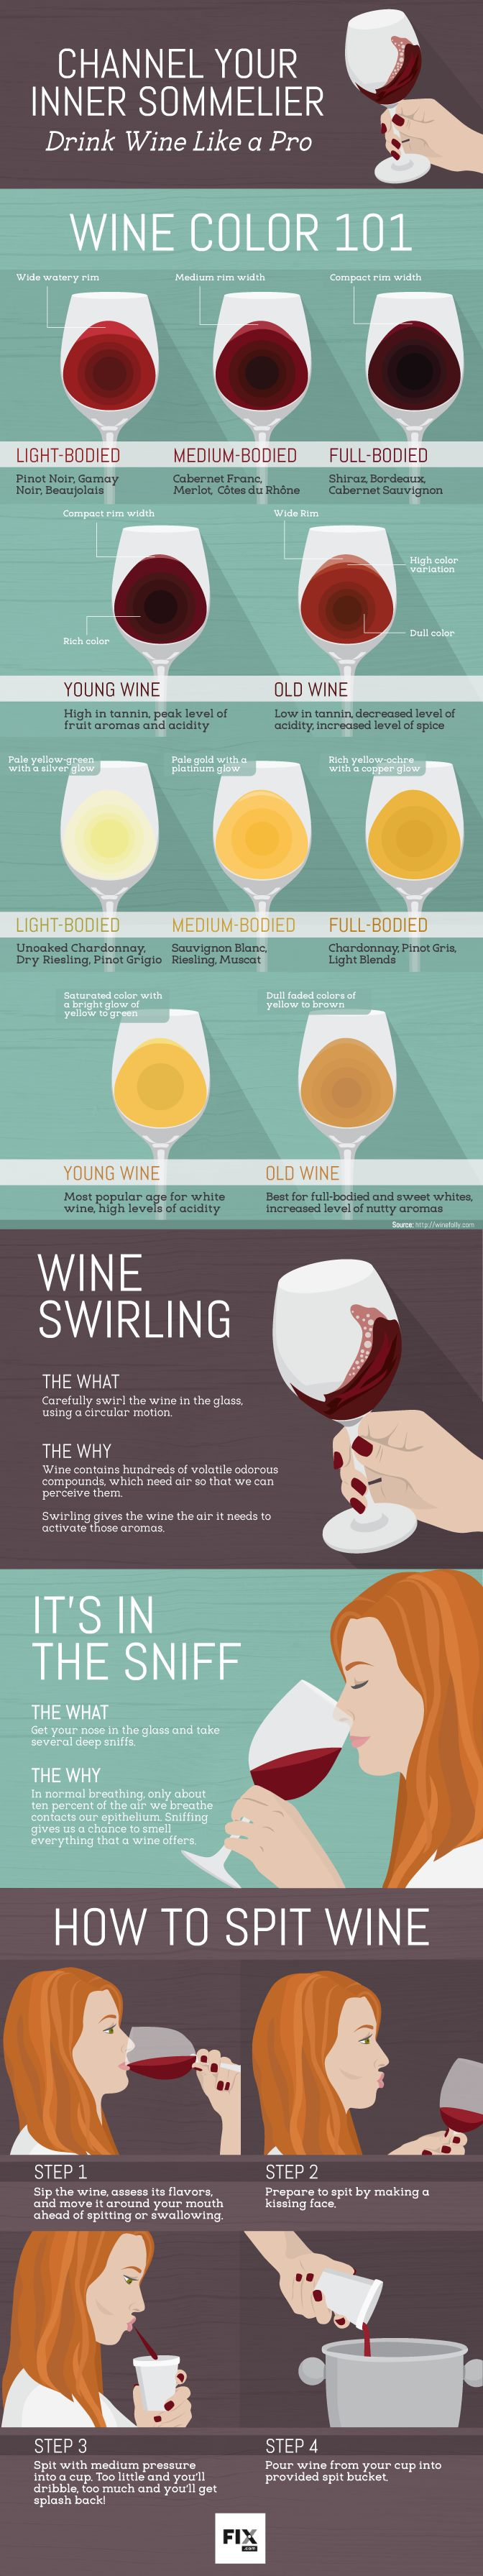 Channel Your Inner Sommelier Drink Wine Like a Pro #infographic #Wine #Food